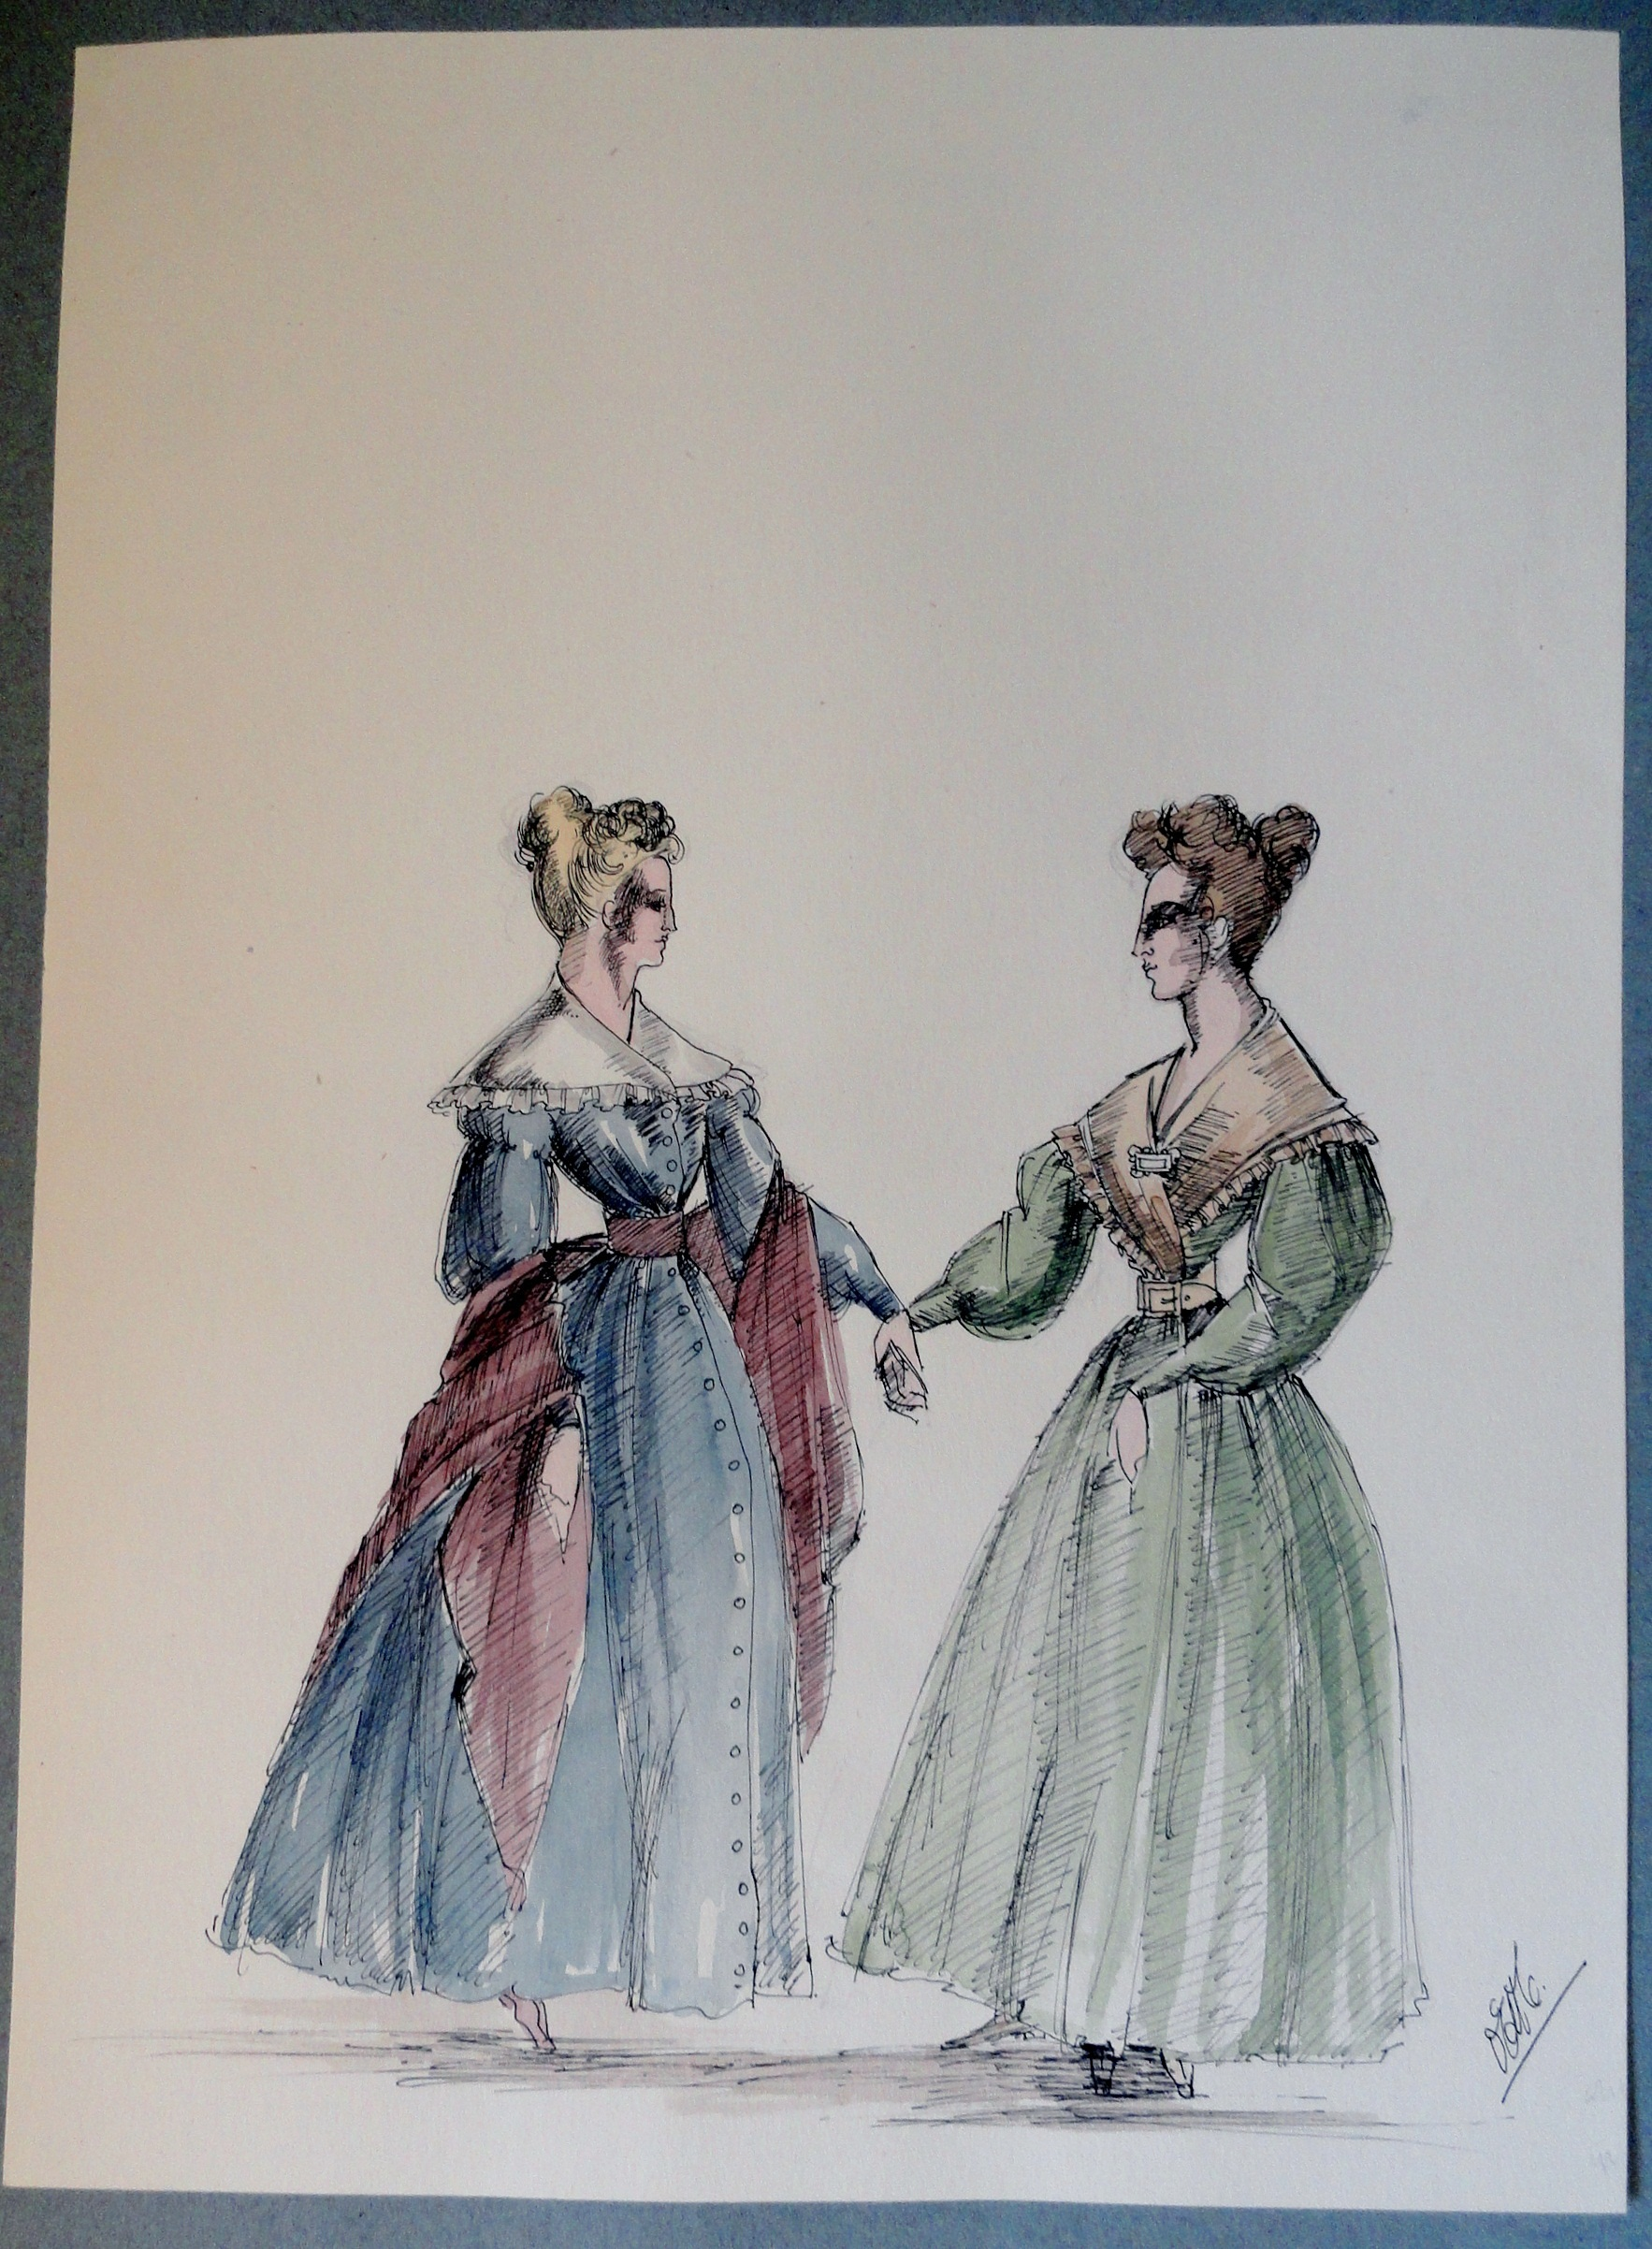 Rachel and sister in blue and green dresses. Pen and Ink and Watercolor. From the Rachel Portfolio by Owen Hyde Clark.